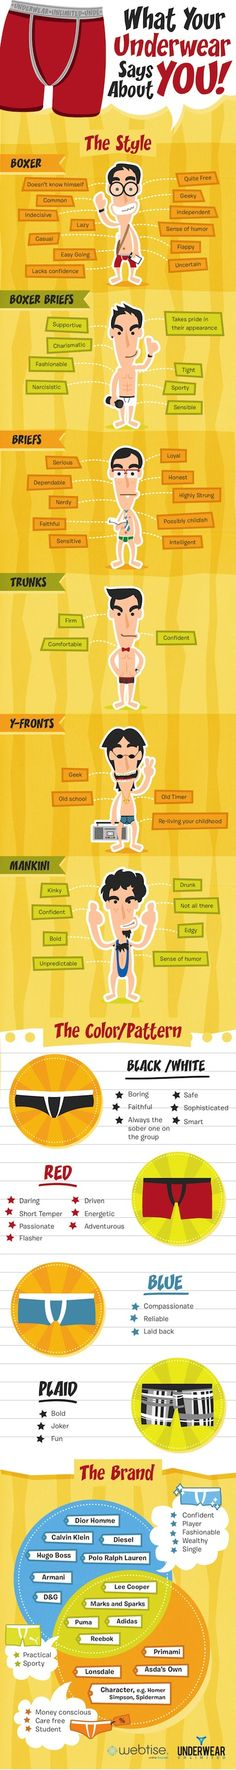 @manmadesimple What your underwear says about you #infographic